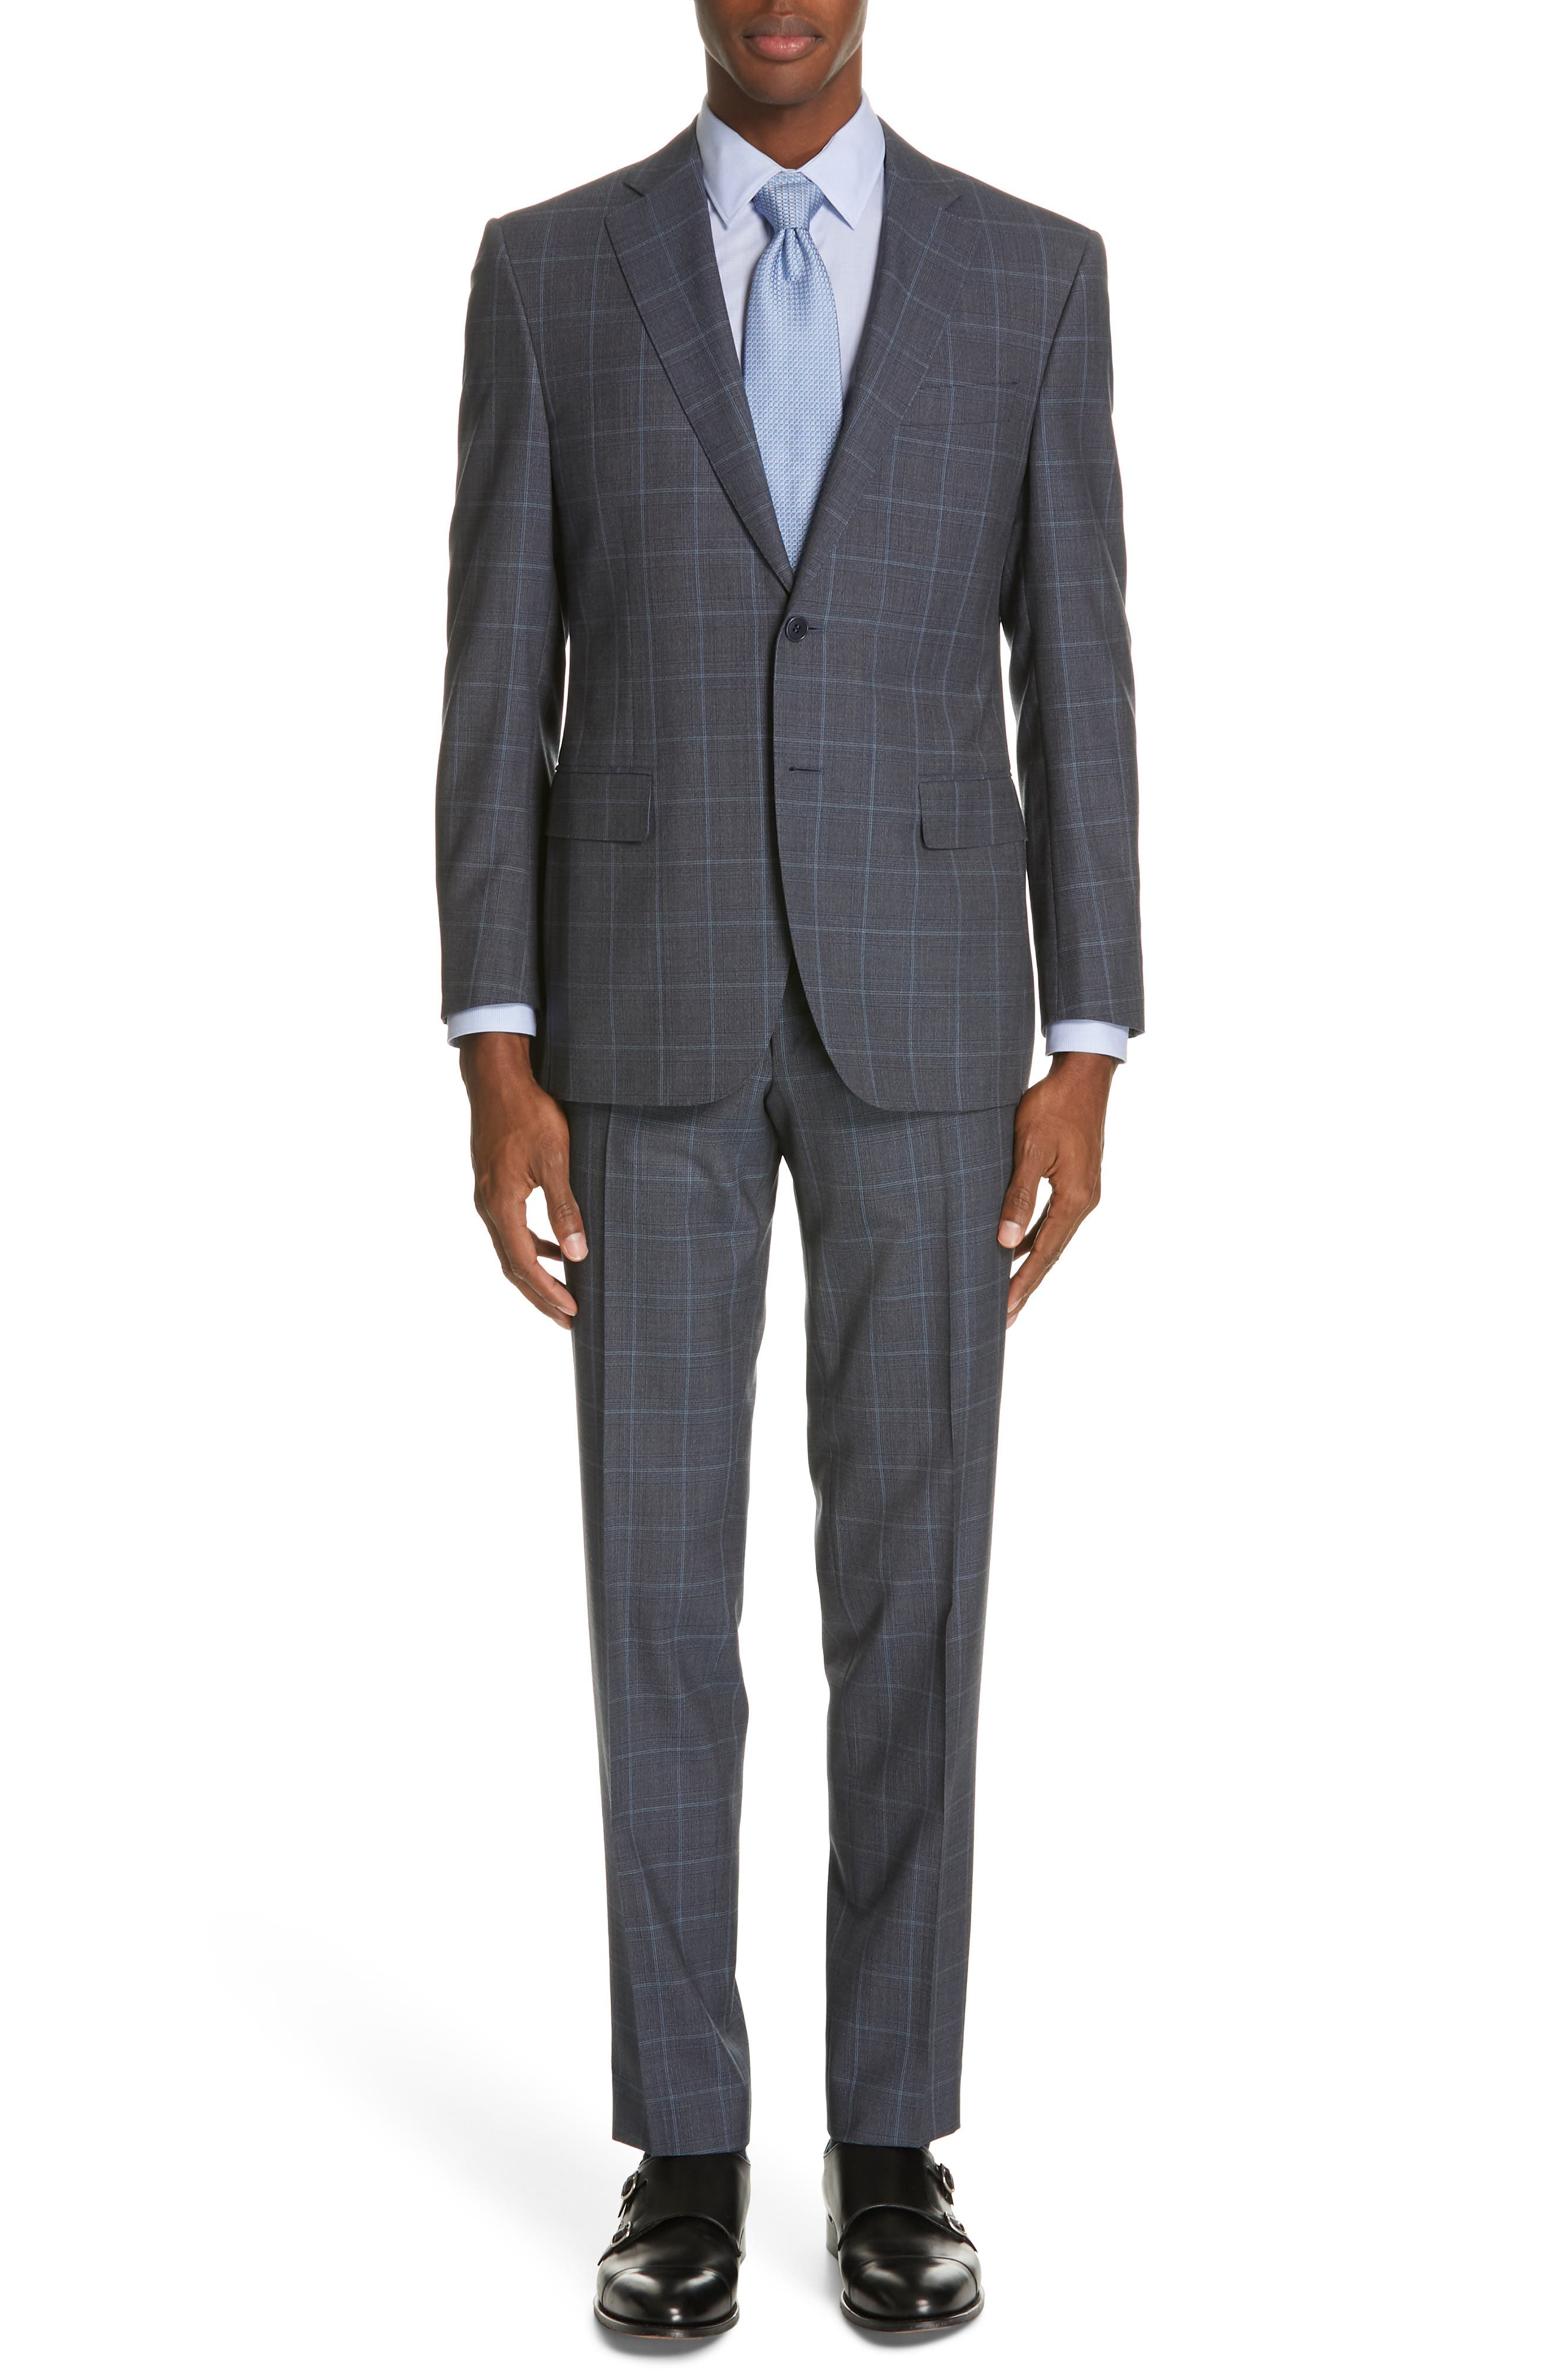 CANALI, Siena Soft Classic Fit Plaid Wool Suit, Main thumbnail 1, color, CHARCOAL